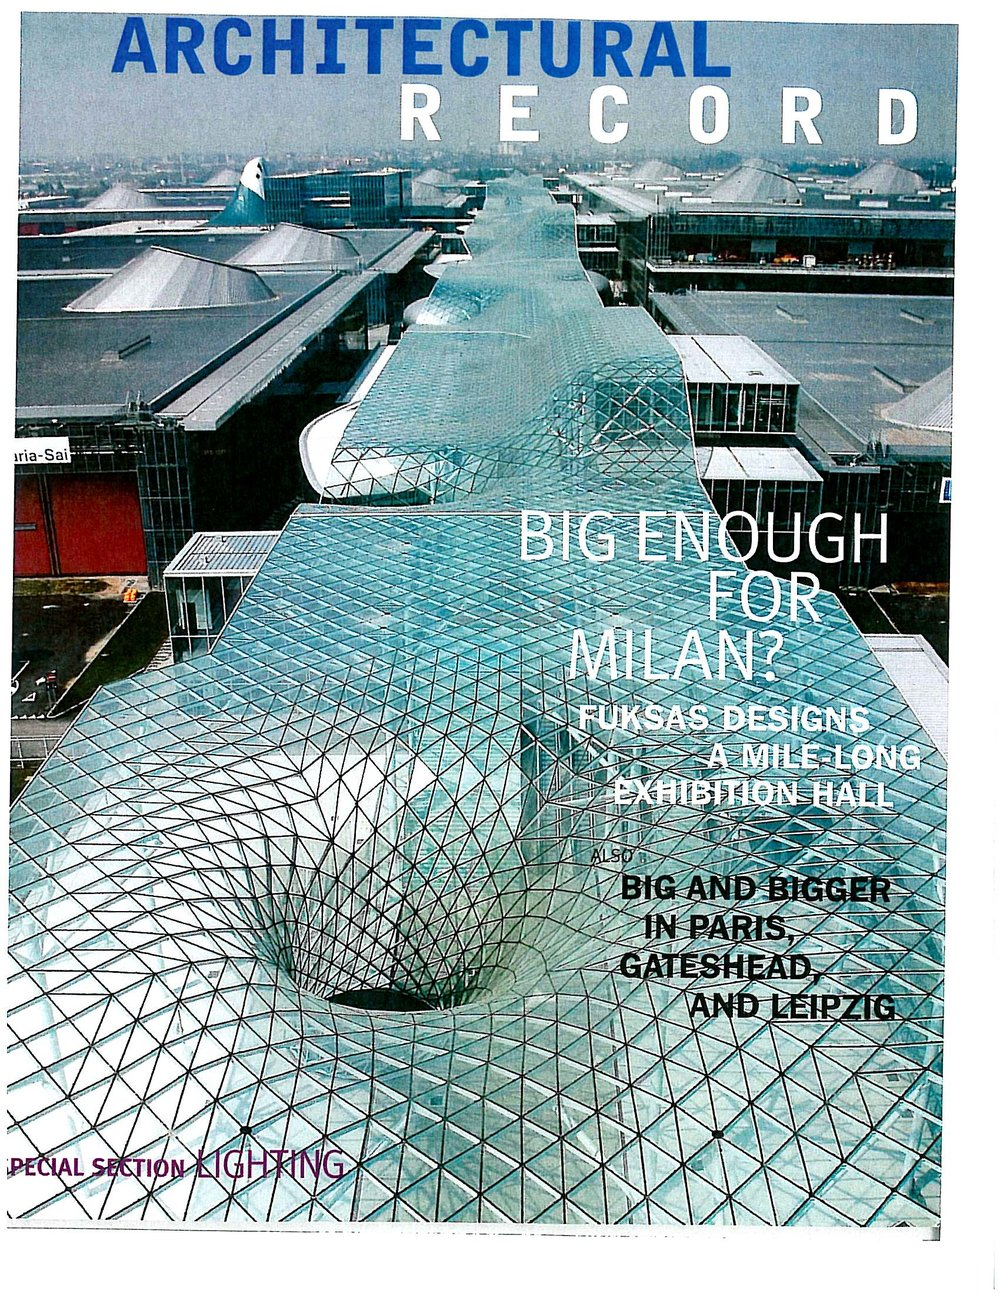 200508_Architectural Record Magazine_HD WMT_Page_1.jpg